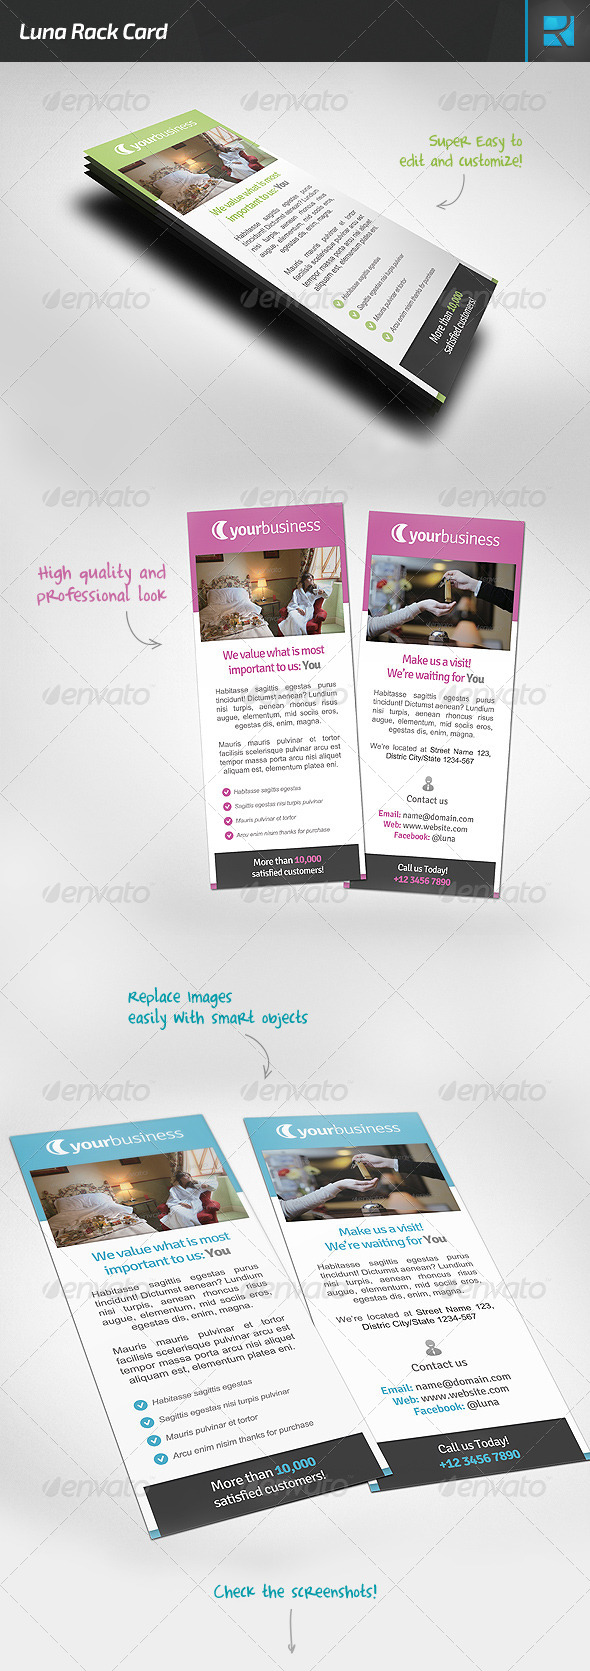 GraphicRiver Luna Rack Card 7311546